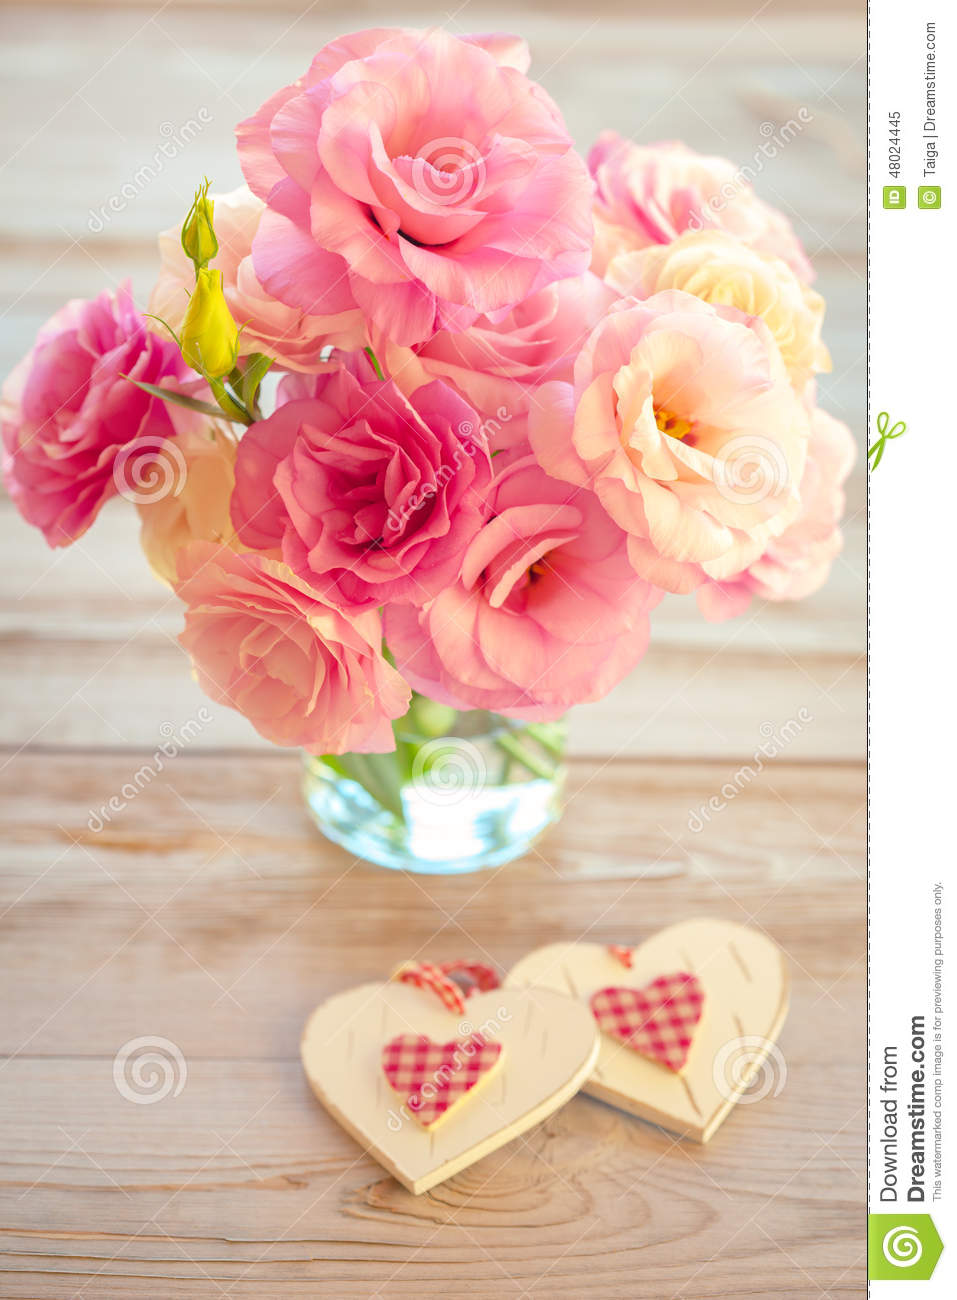 Love Vintage Background Beautiful Flowers And Two Handmade Hea